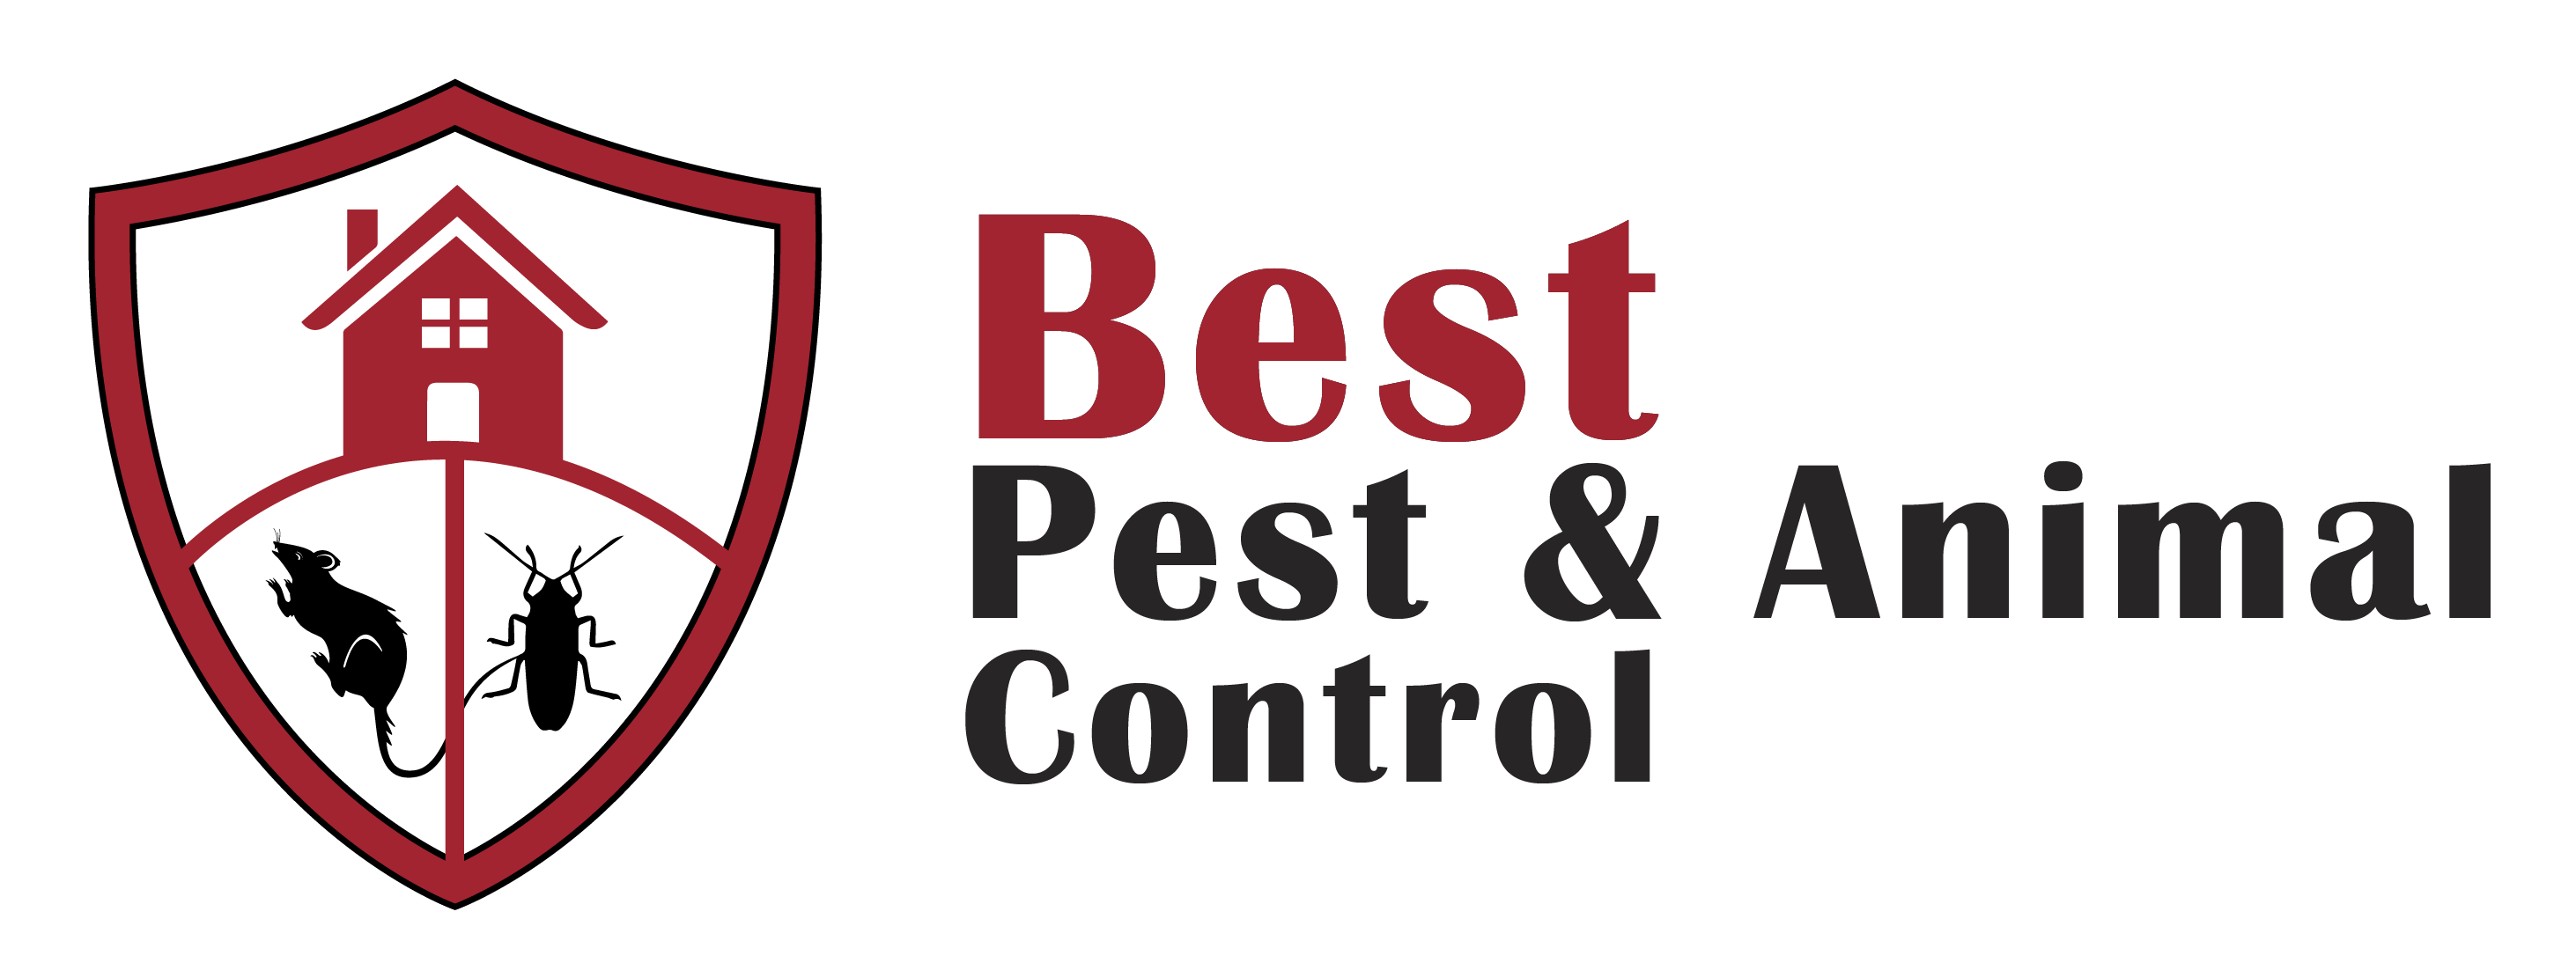 Best Pest & Animal Control